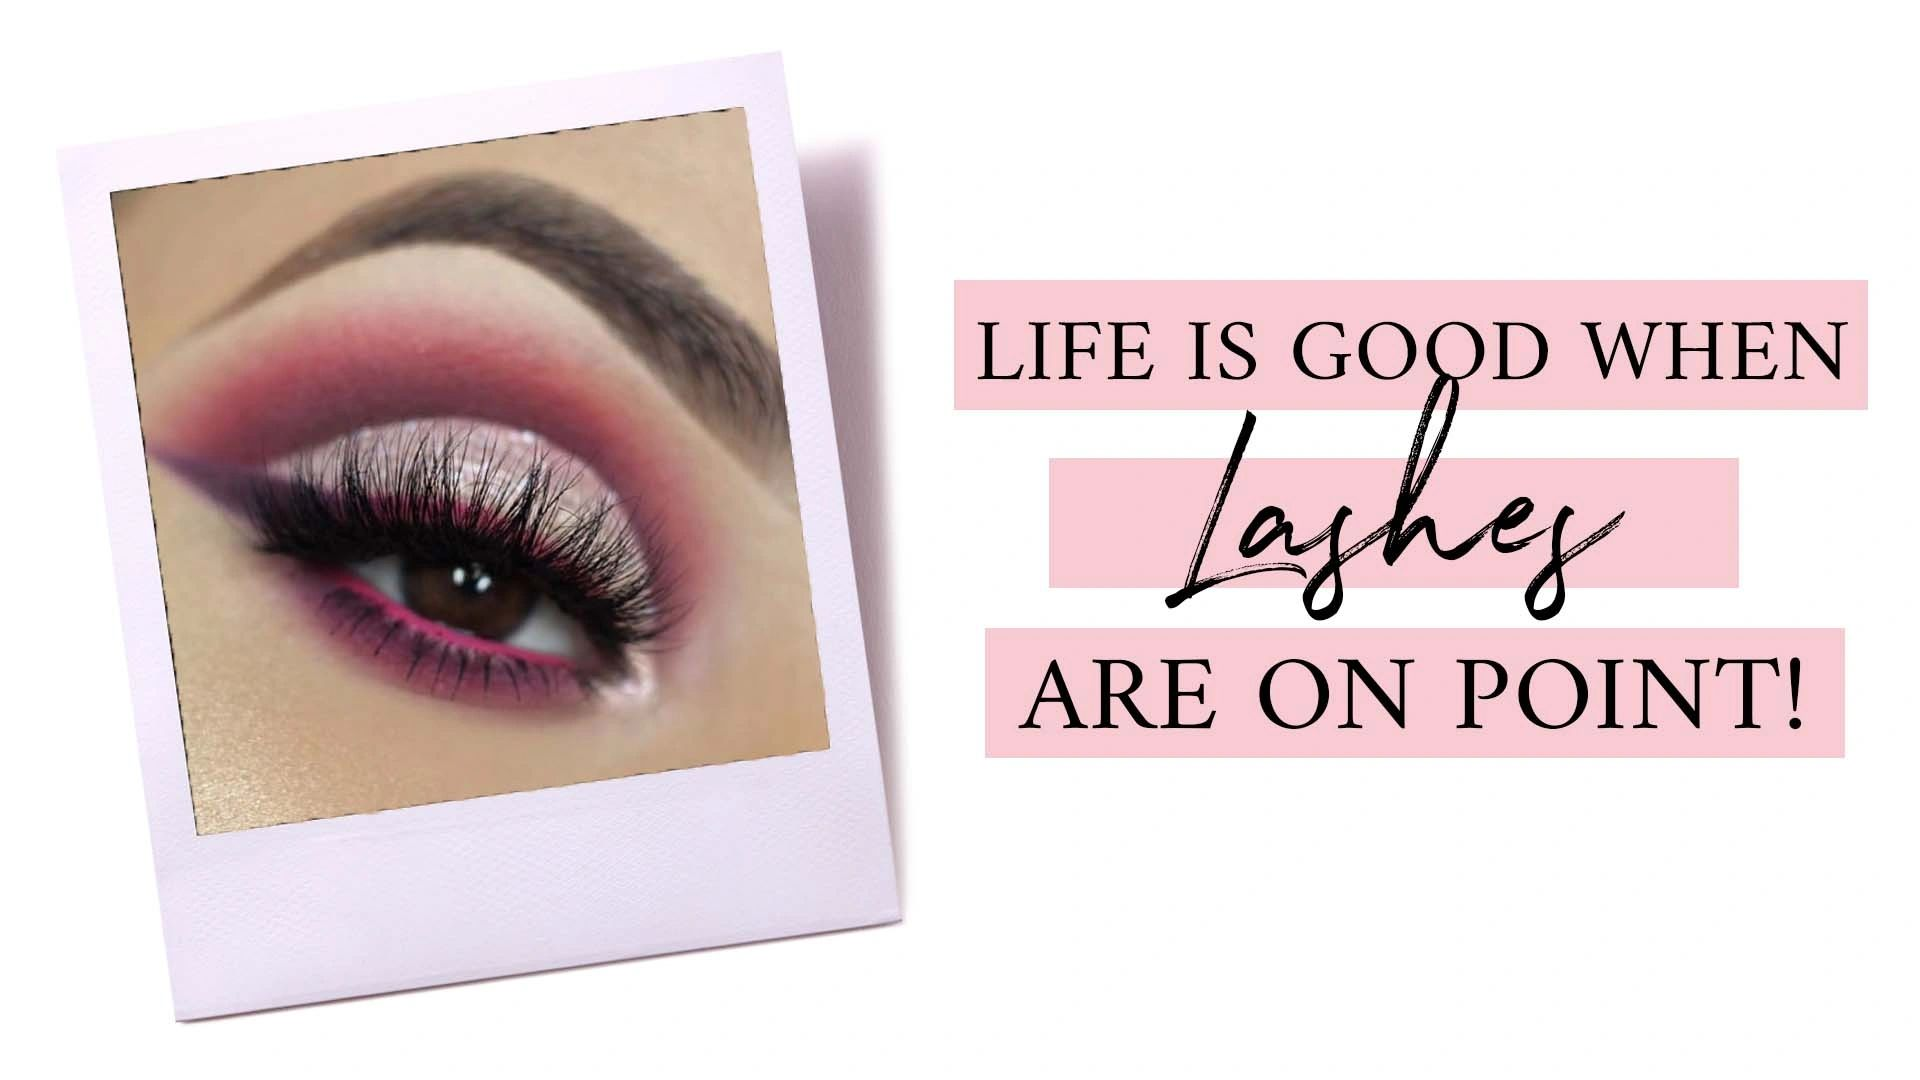 Life is good when lashes are on point banner